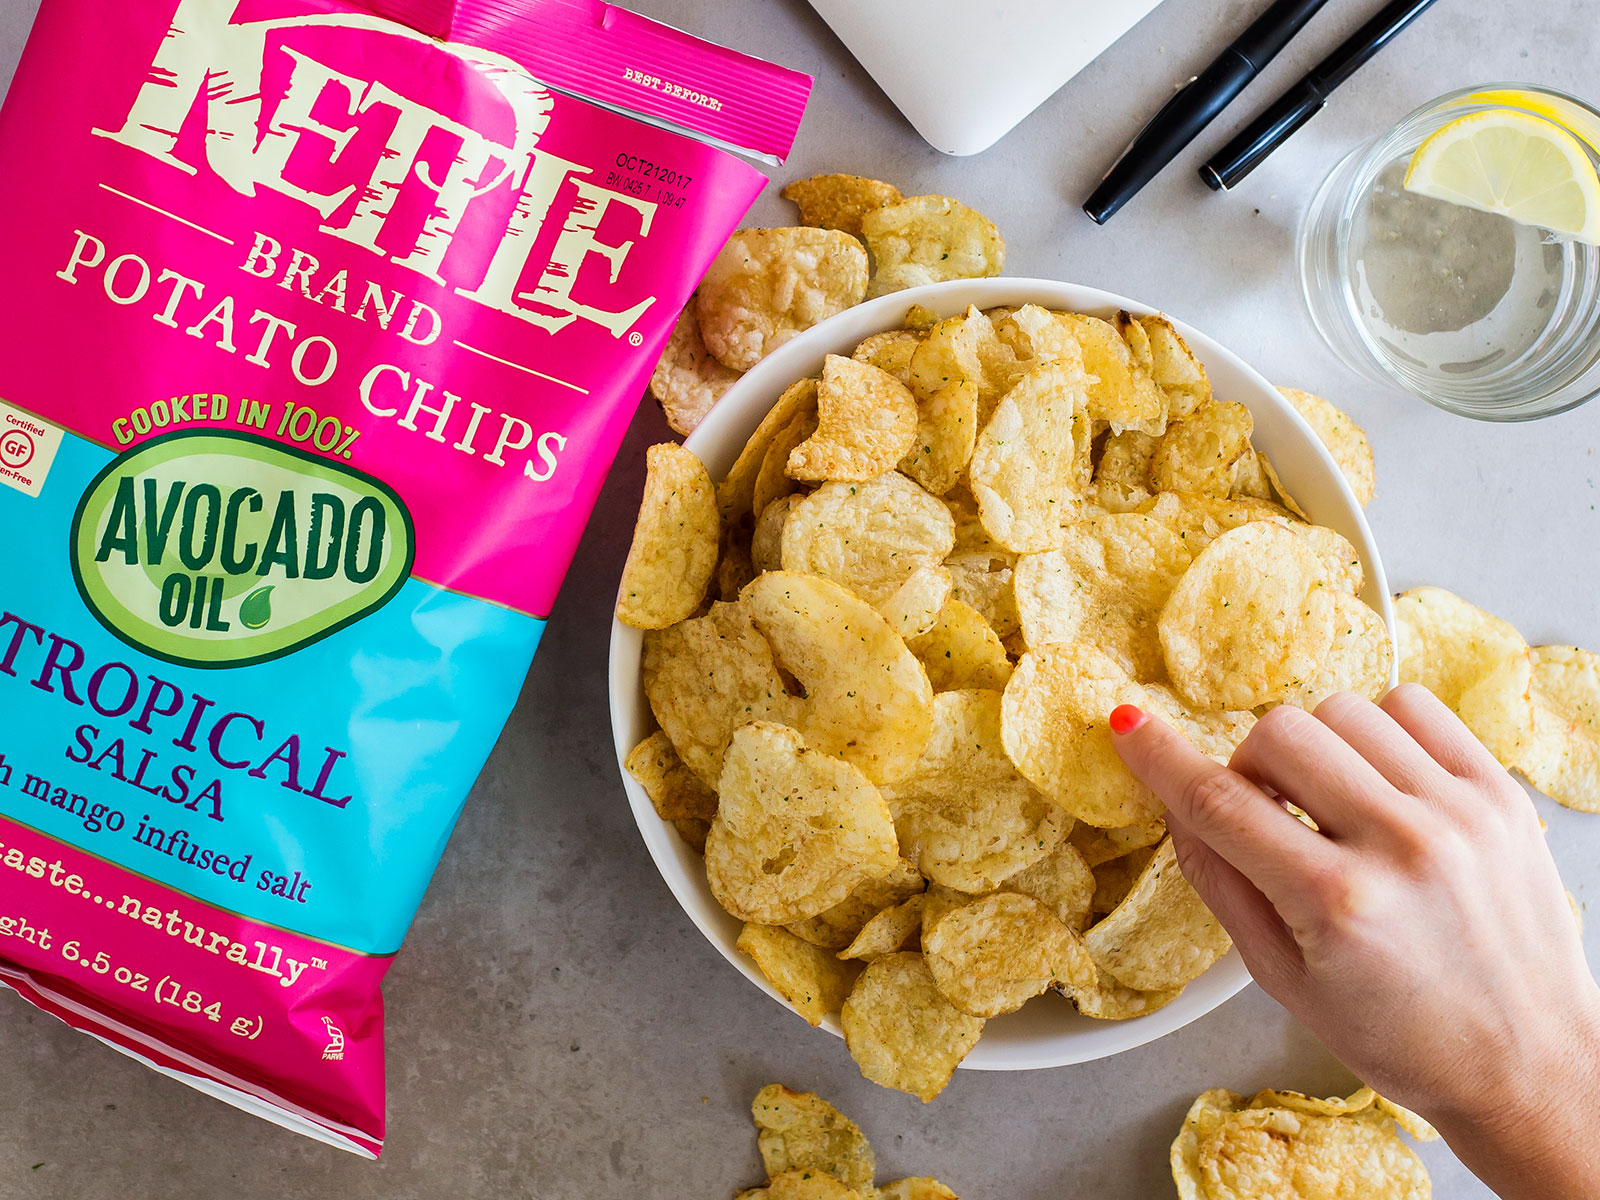 Tropical Salsa Potato Chips